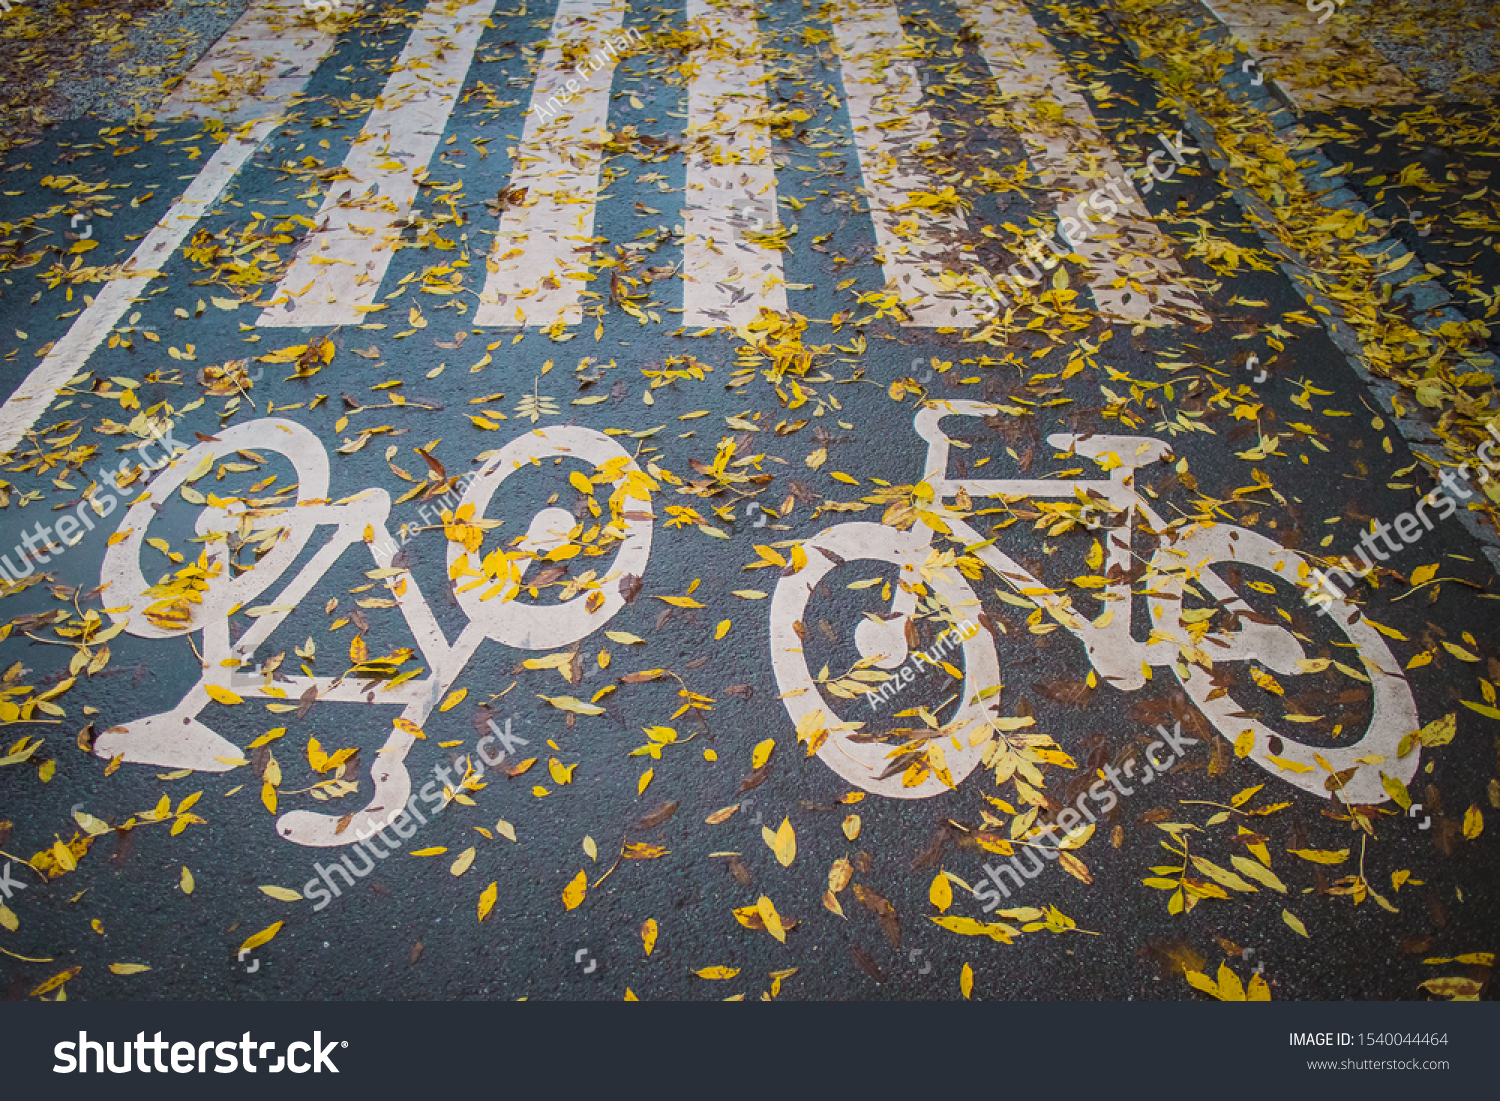 Bicycle path, double lane in Stockholm, with painted bicycle pictograms. Bicycle path covered with yellow leaves, dangerous slippery surface. #1540044464